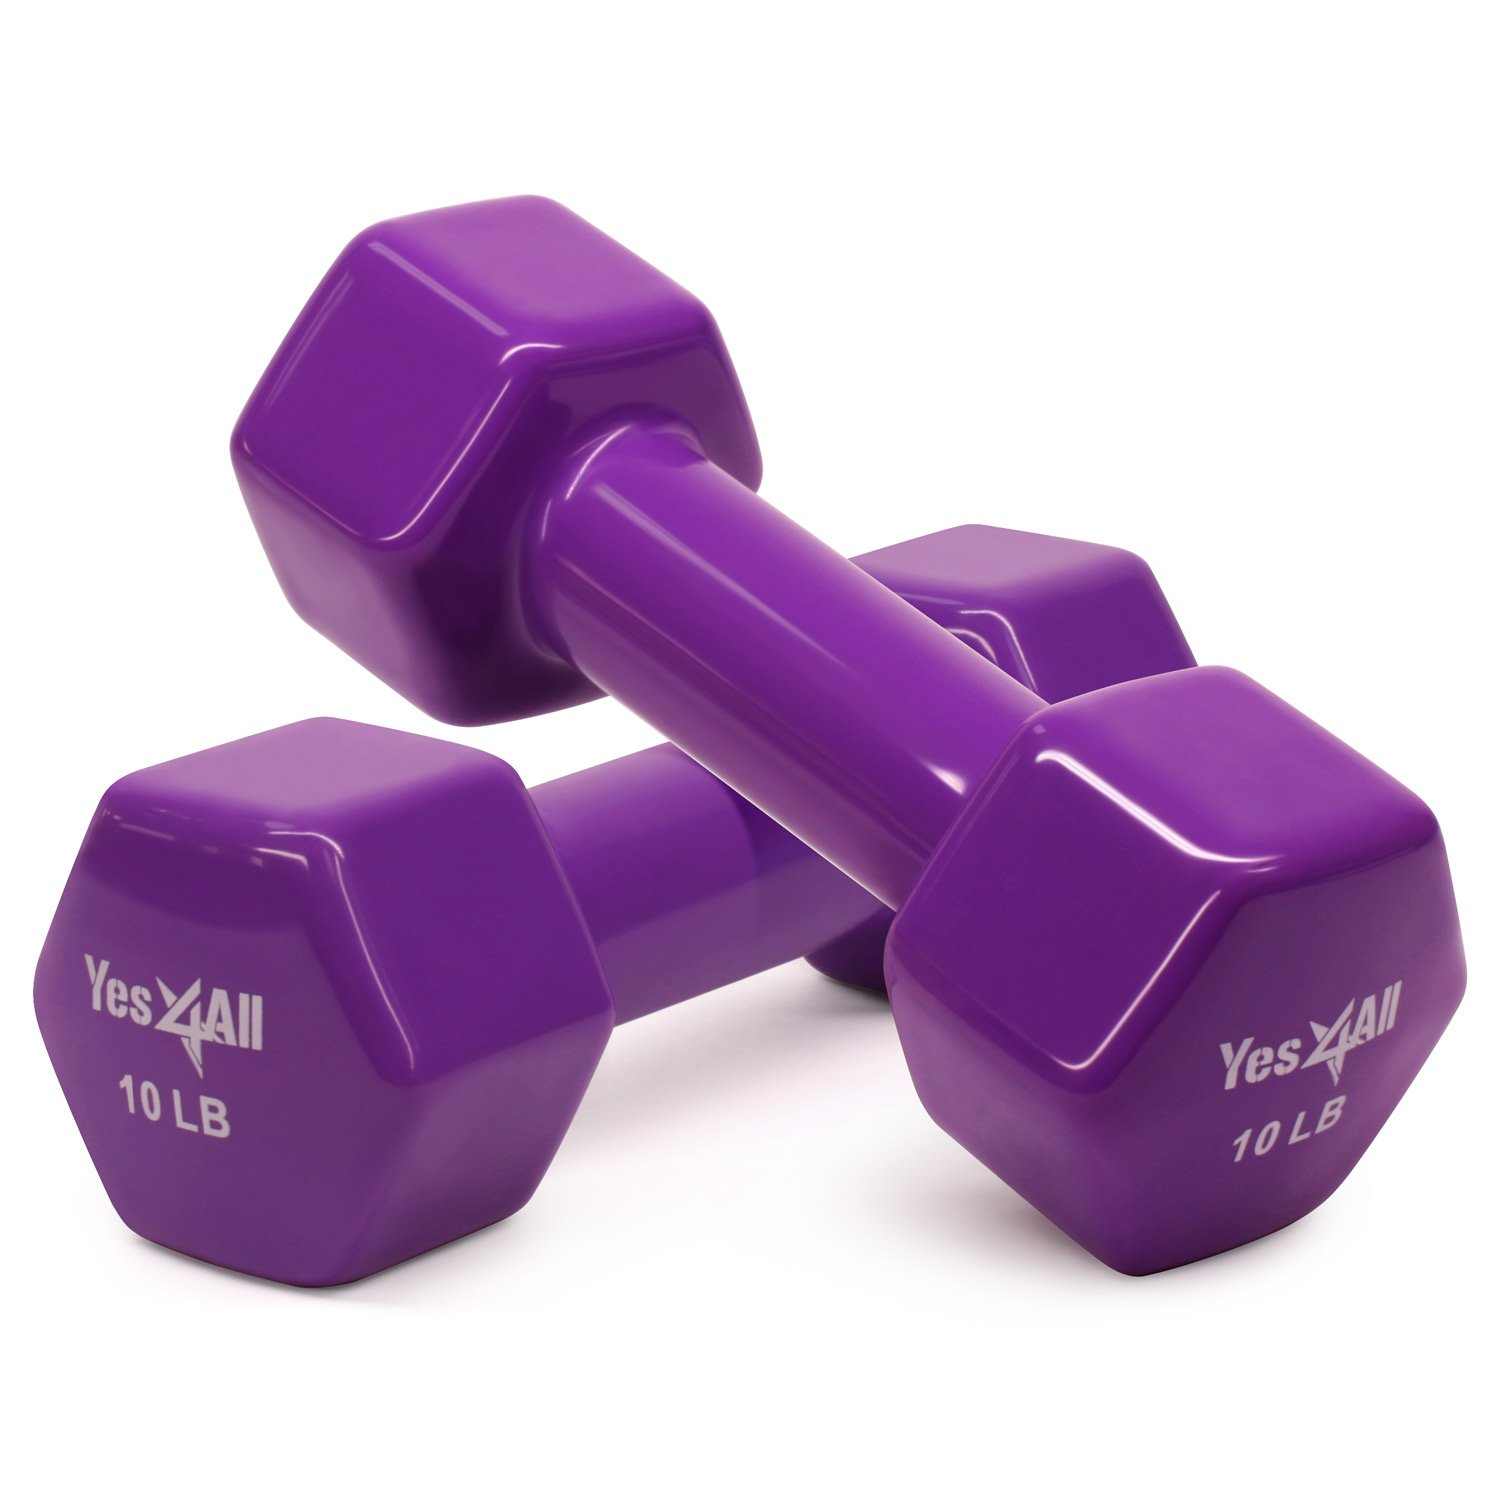 Yes4All PVC Dumbbells Sold in Pair